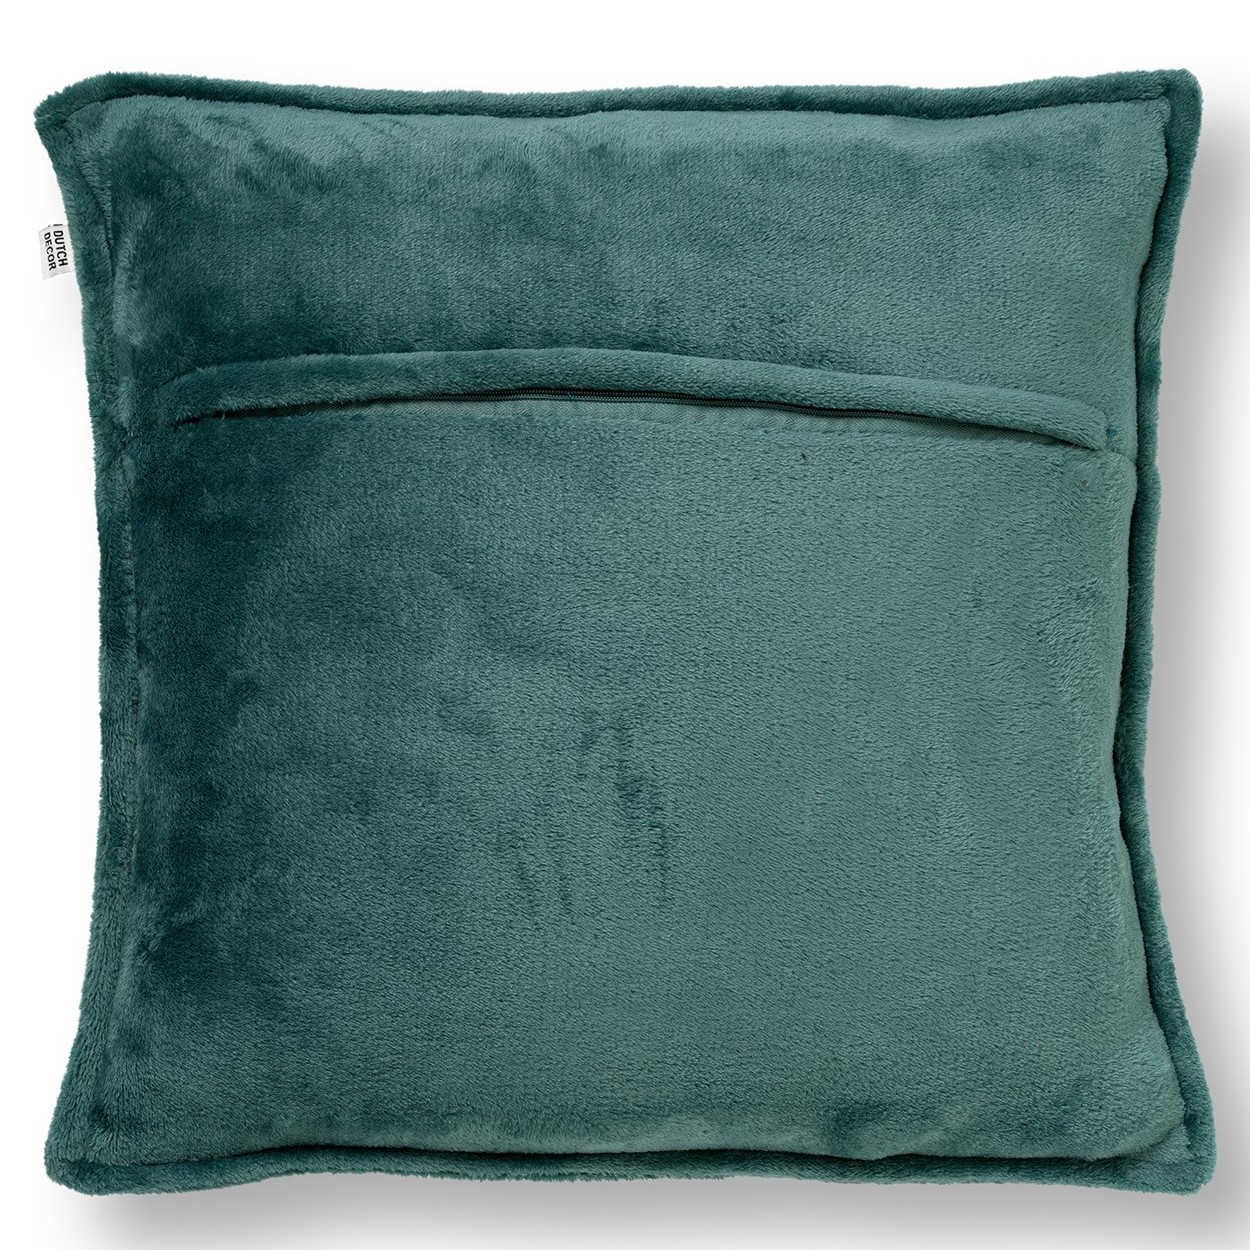 CILLY - Kussenhoes van fleece Sagebrush Green 45x45 cm